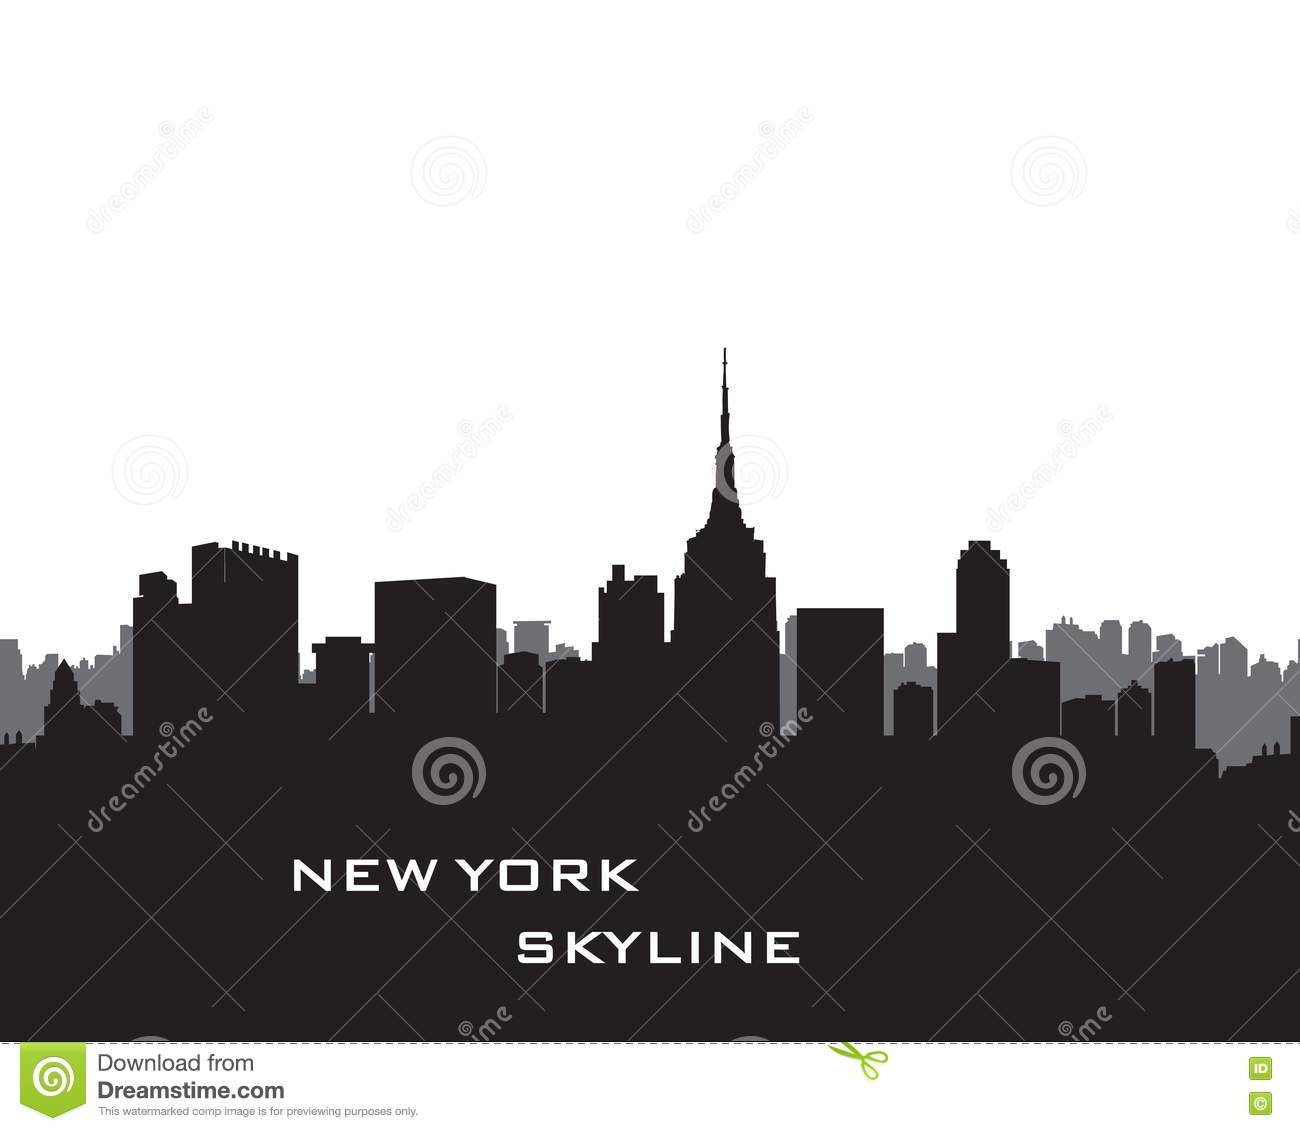 New York Skyline Vector Usa Landscape Cityscape With Skyscrapers